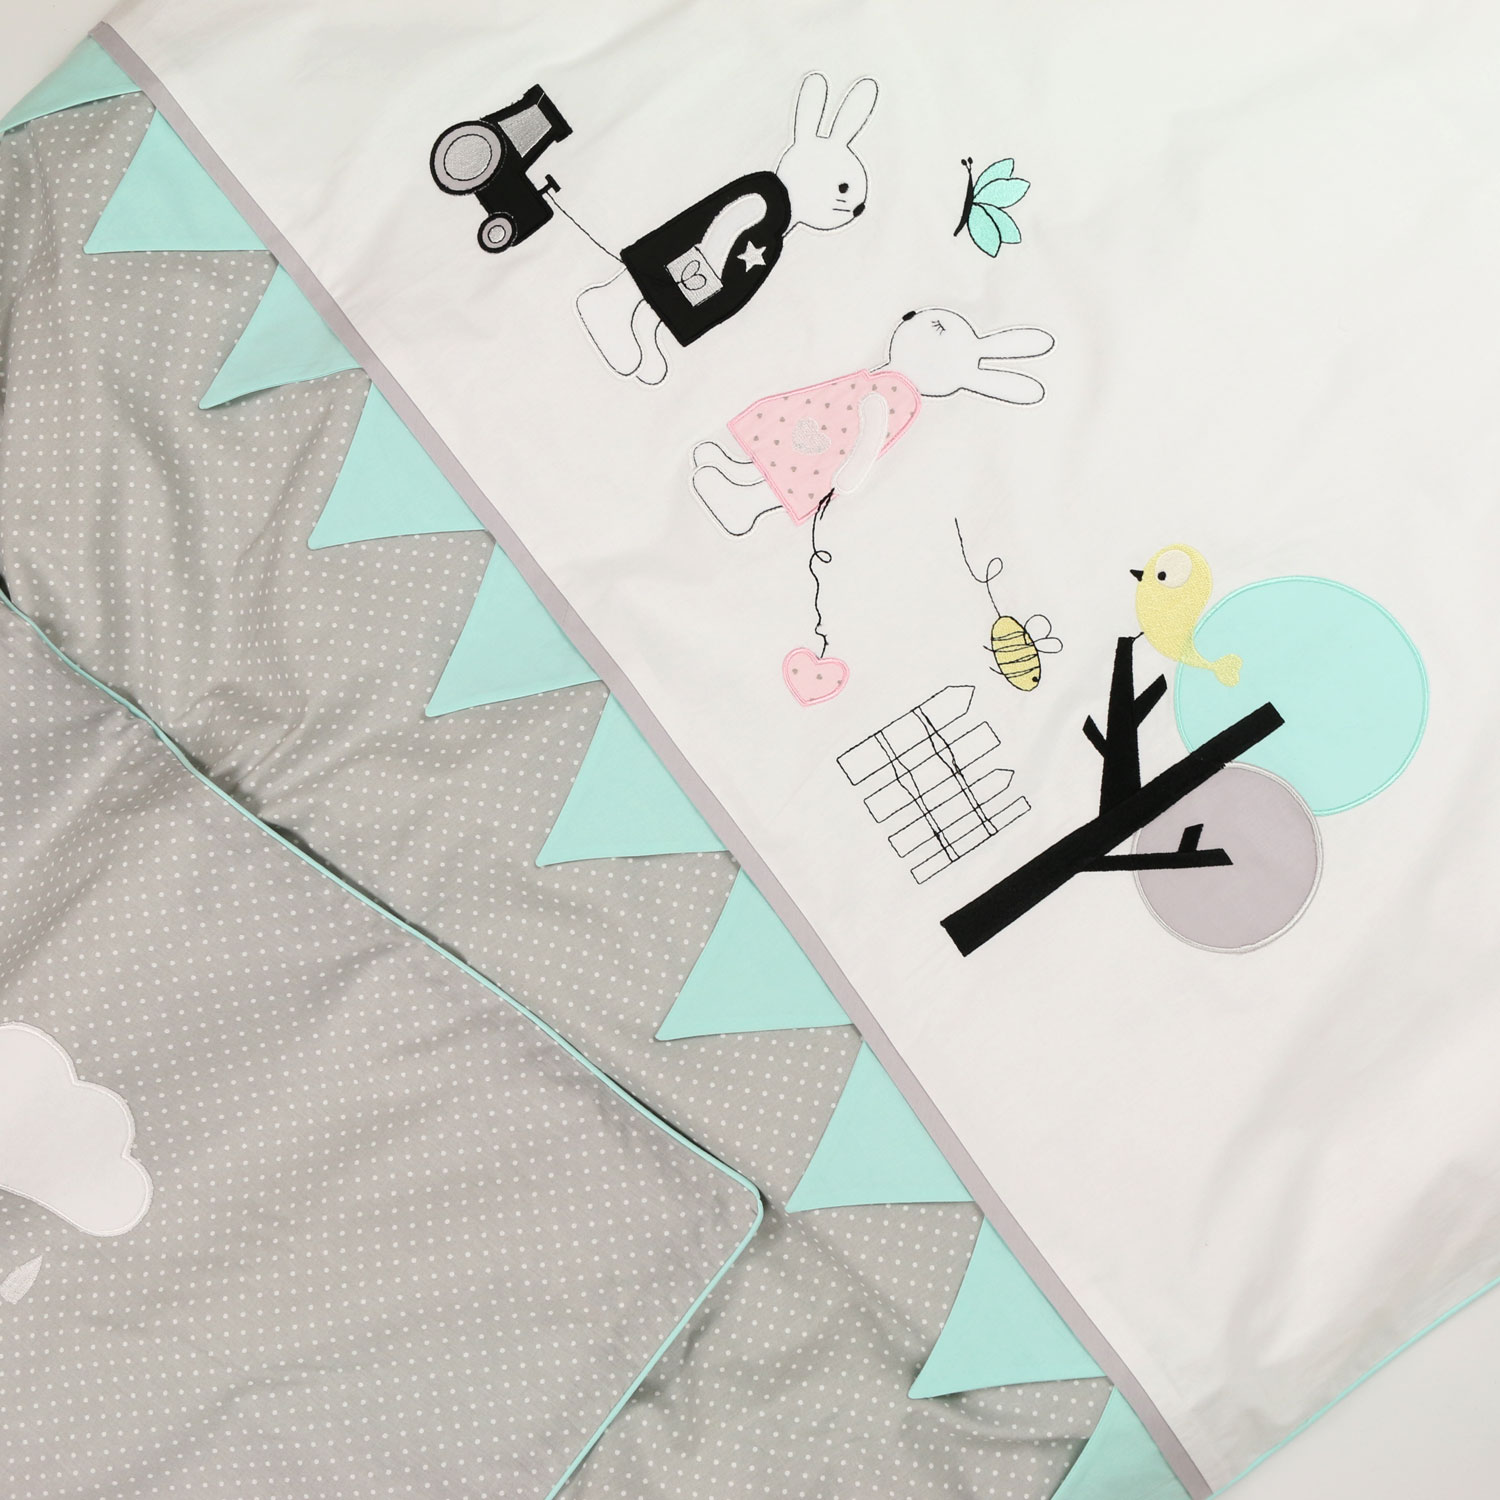 Kinderbettwäsche Mint Baby Lal By Peri Interior For Kids Aus Berlin Hasenfreunde